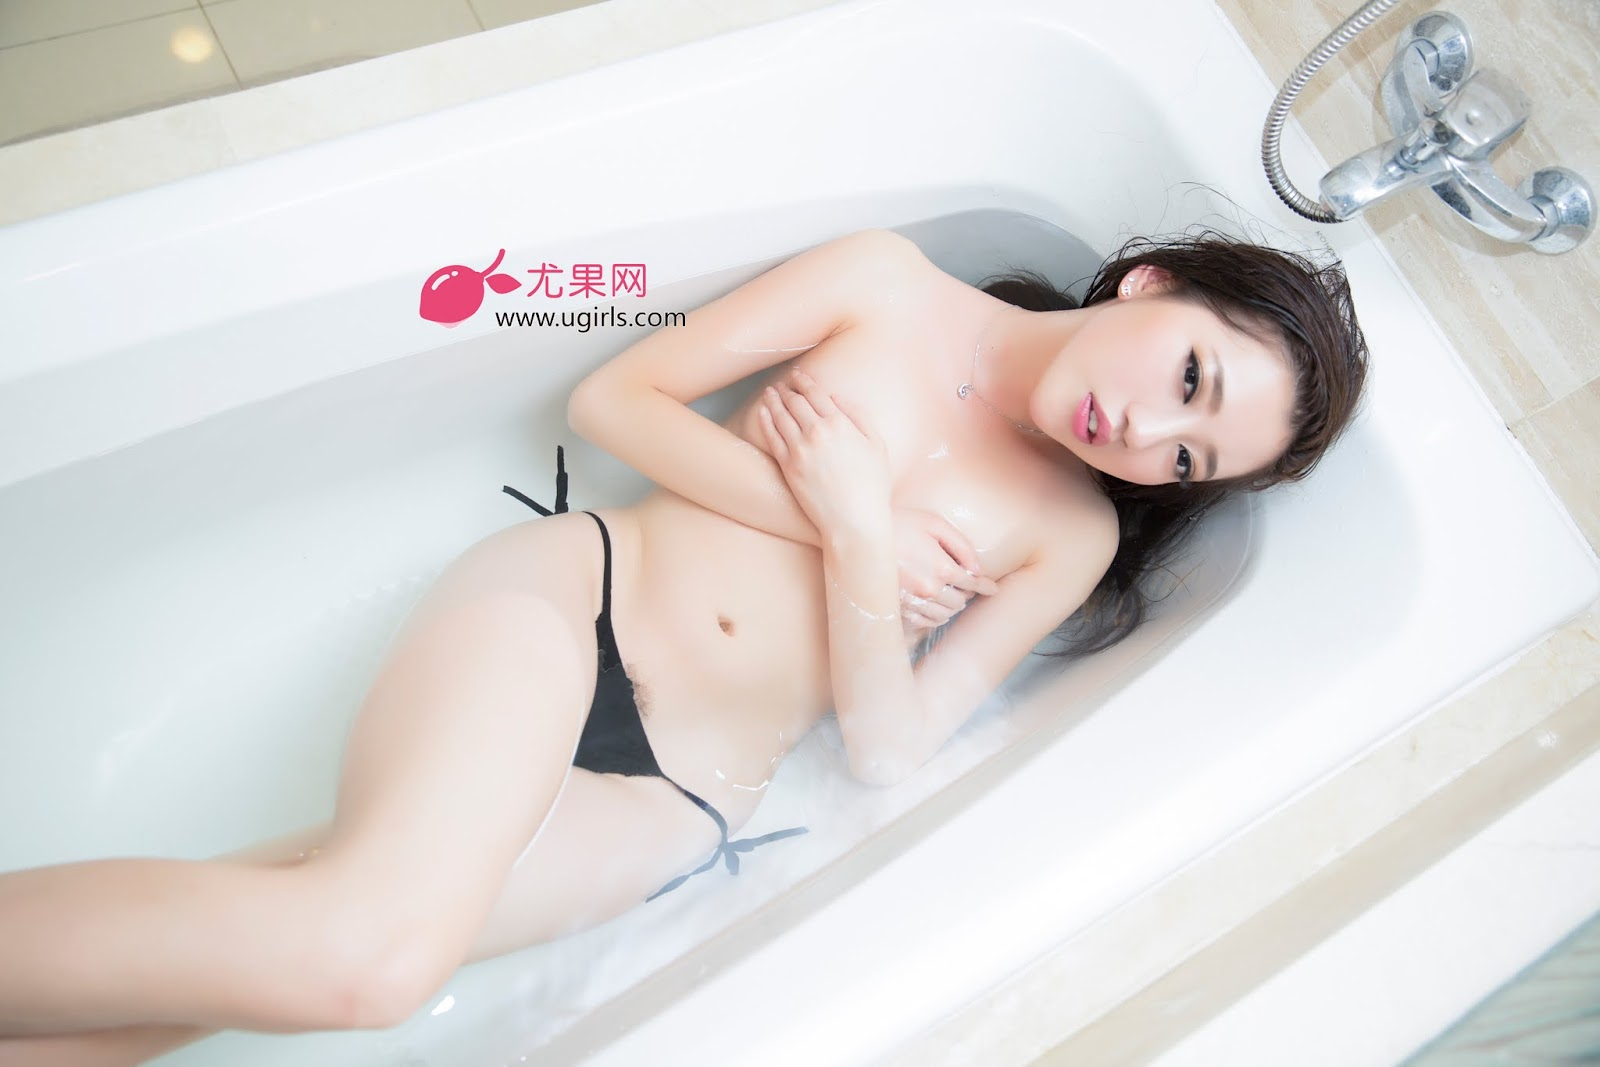 A14A5674 - Hot Model UGIRLS NO.8